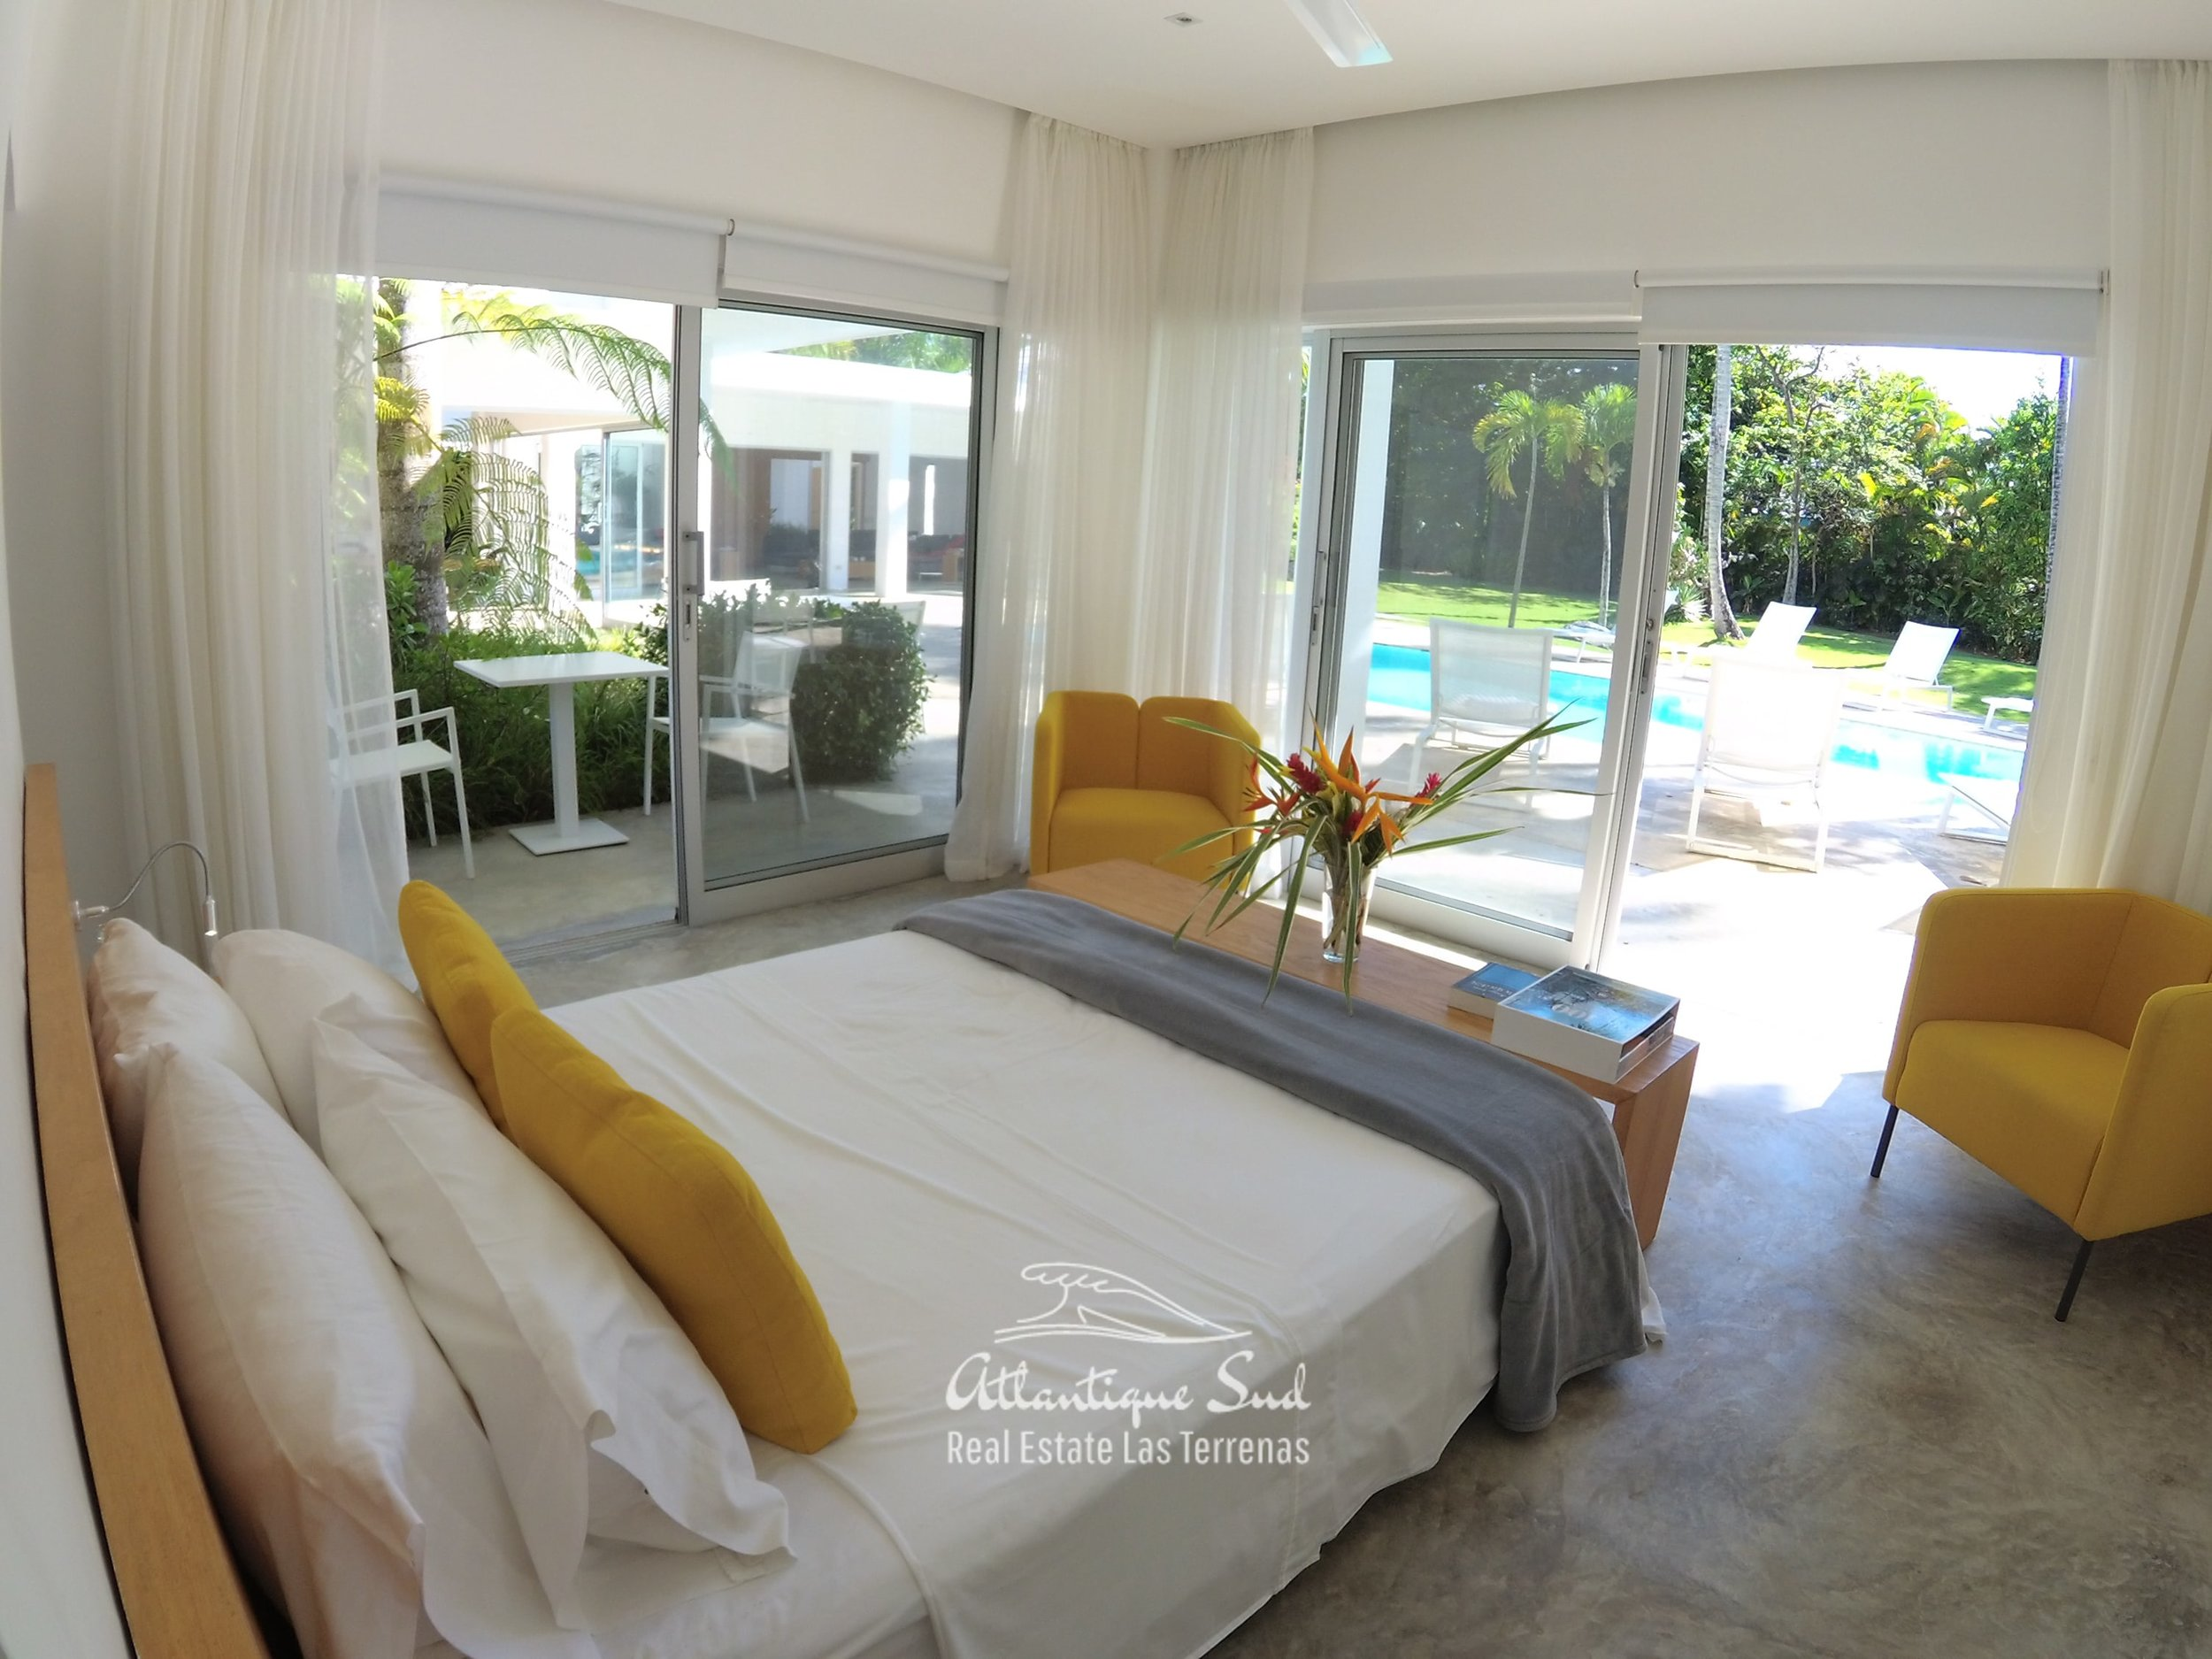 Bedroom 4 villa for sale Las terrenas-min.JPG